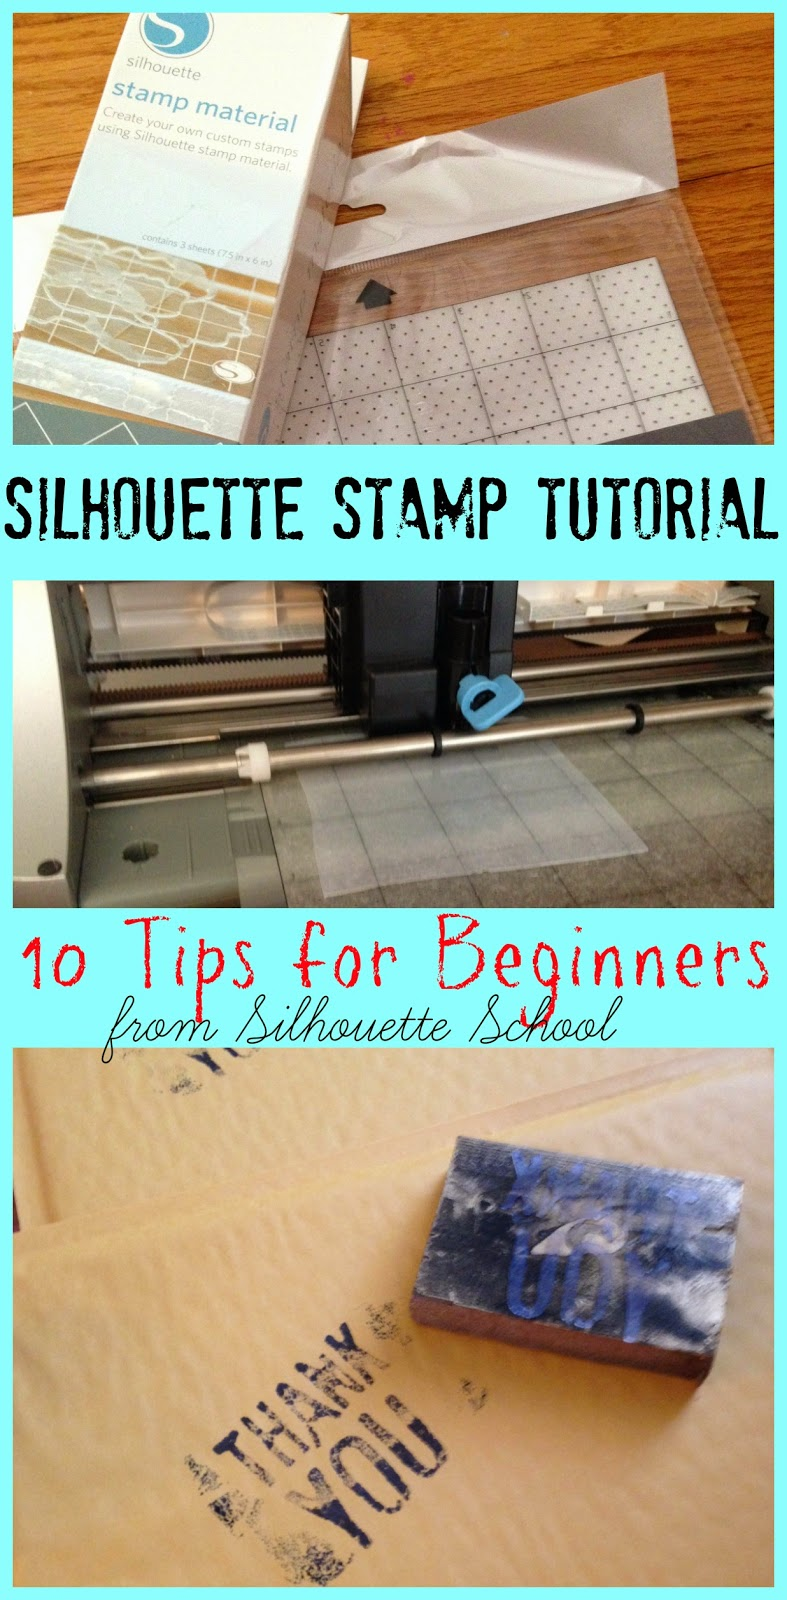 Silhouette, stamp, tutorial, beginners